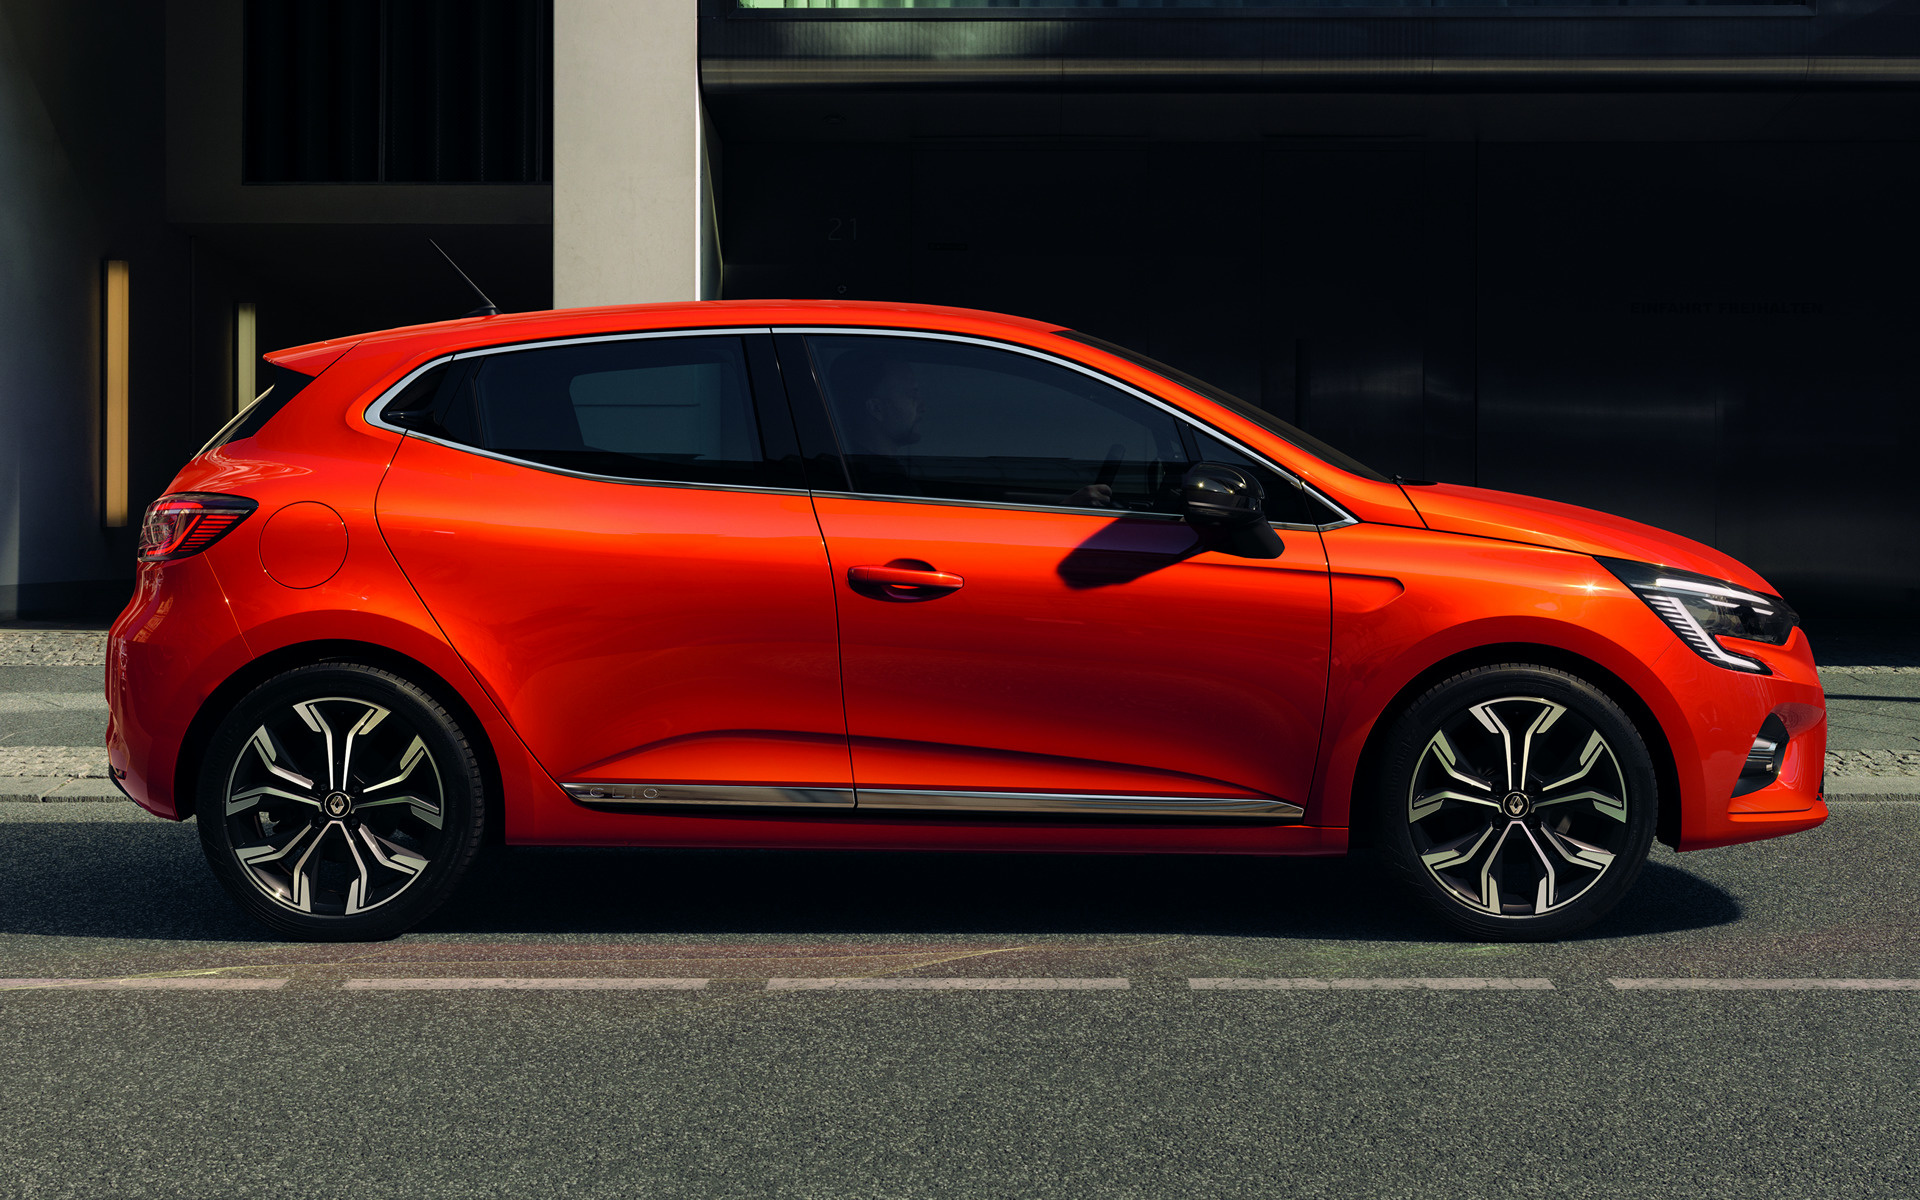 2019 Renault Clio Wallpapers And Hd Images Car Pixel